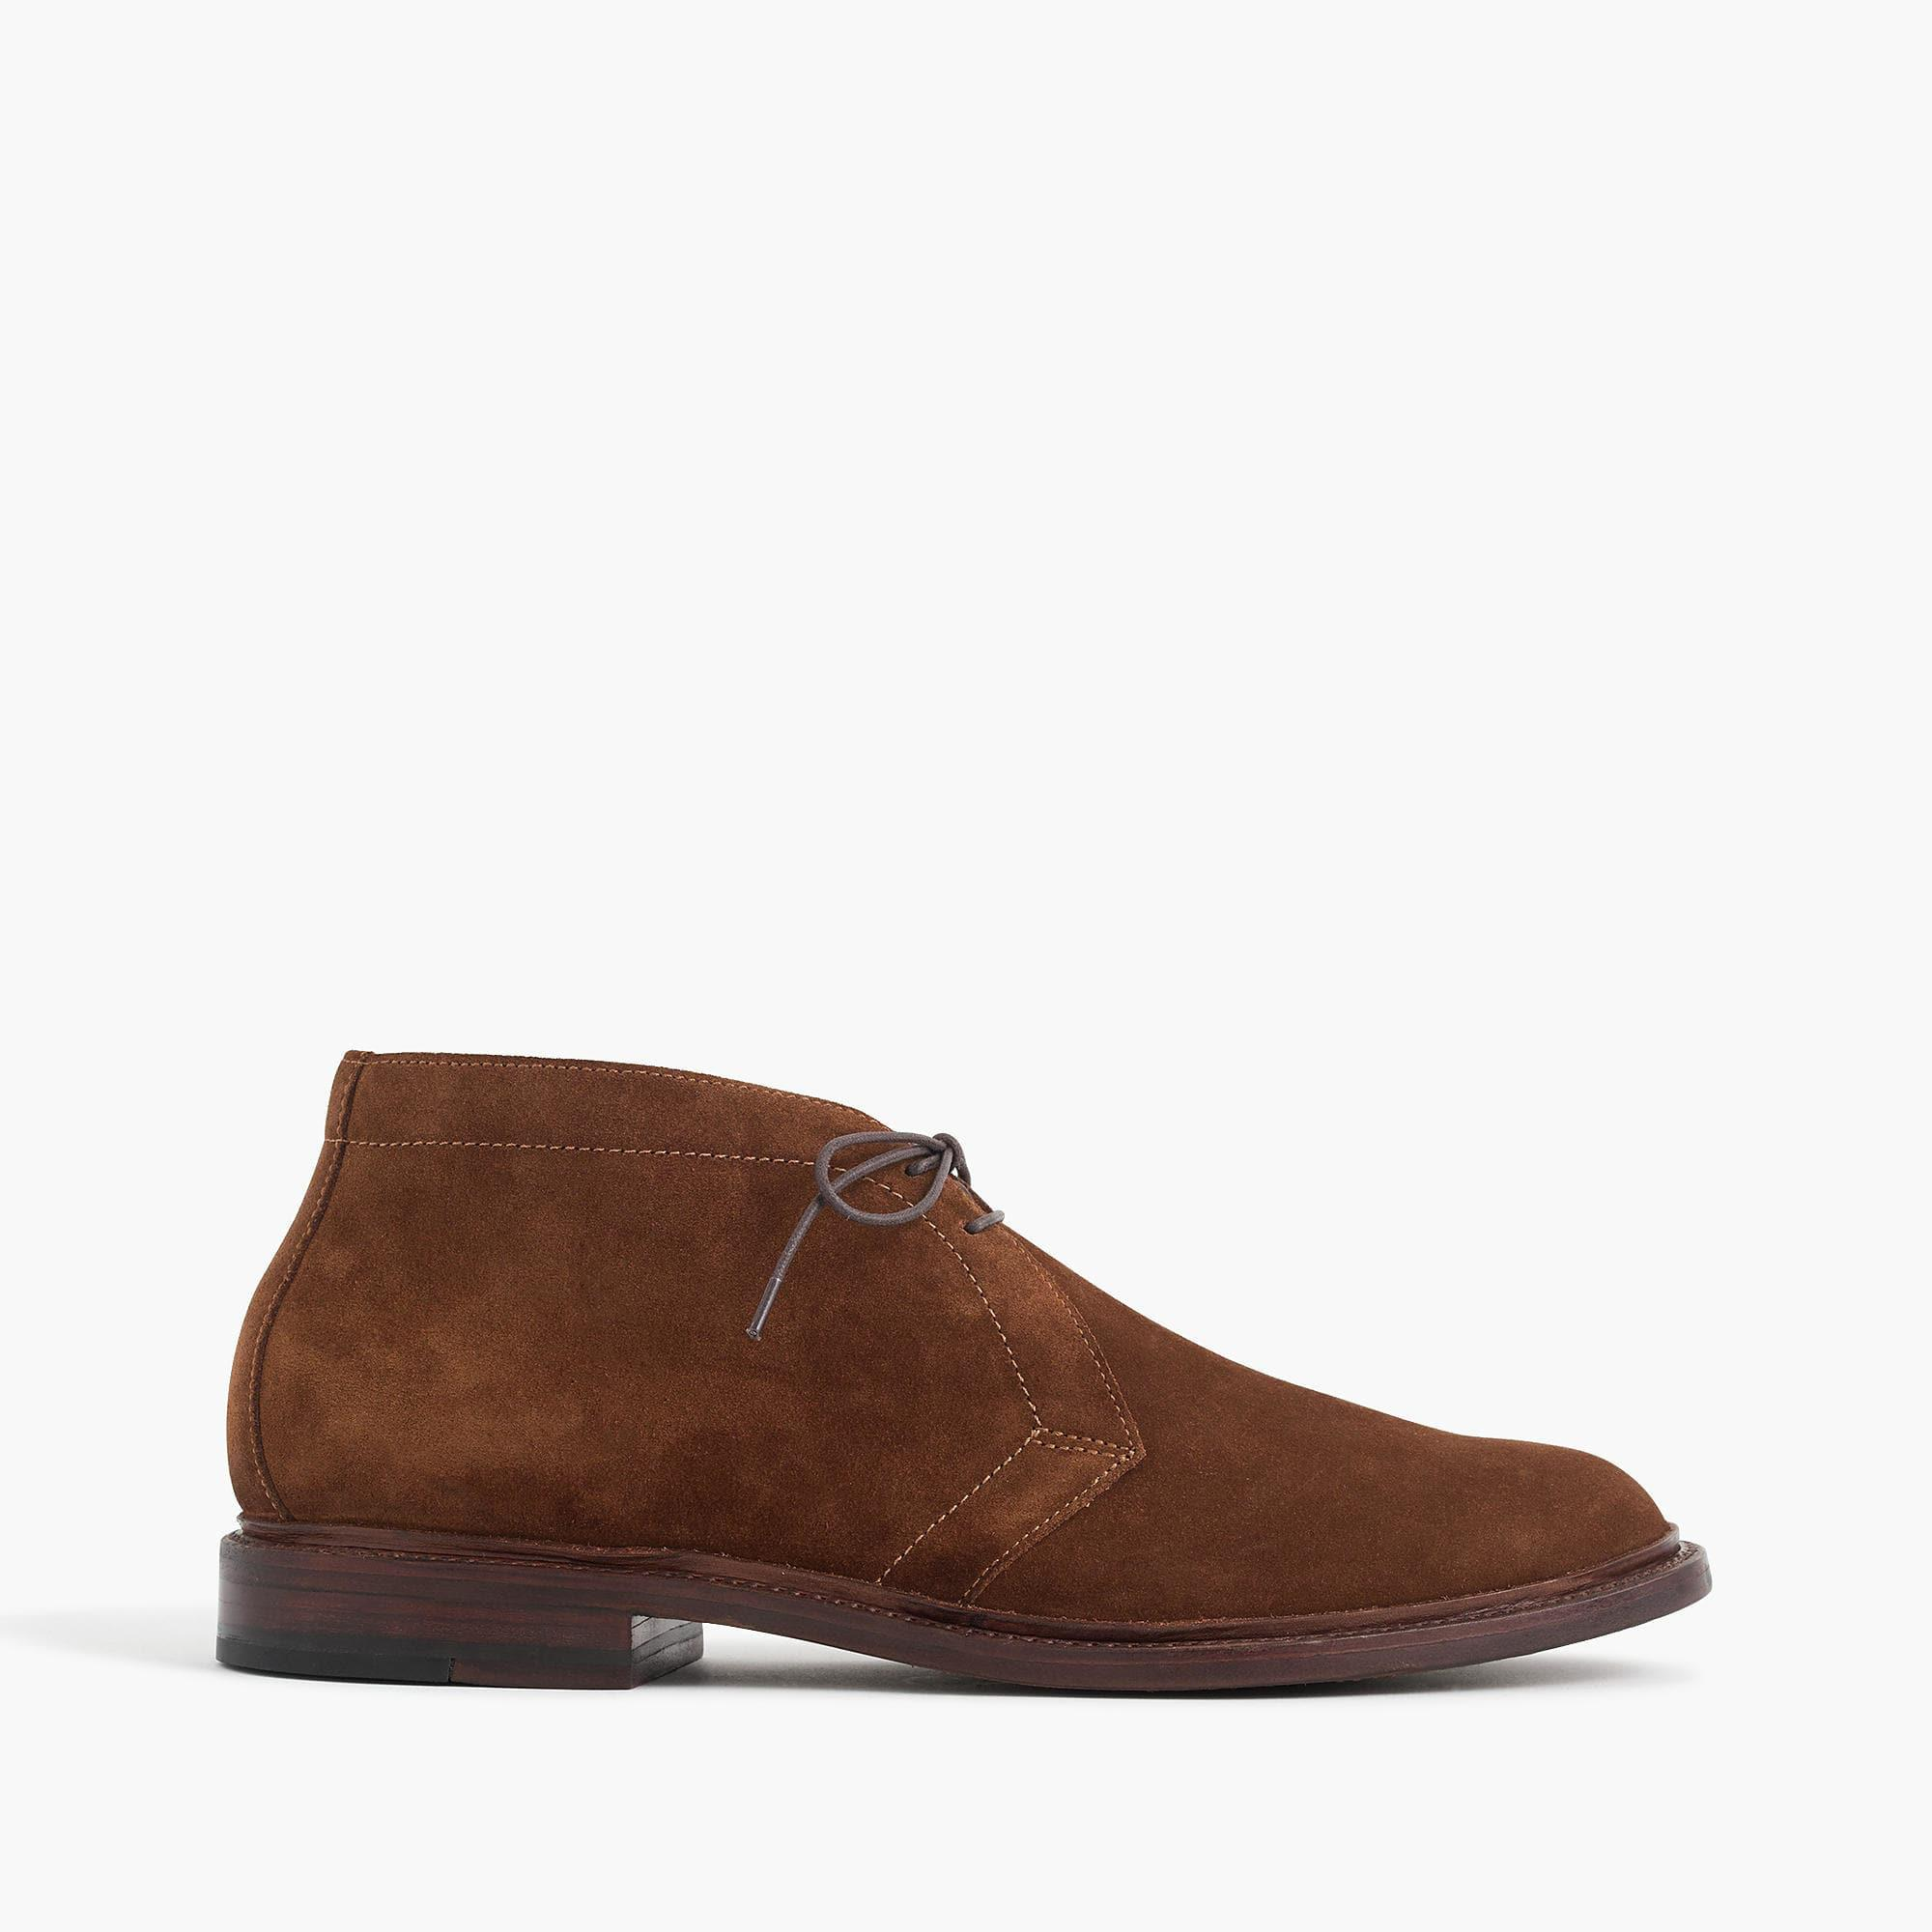 J Crew Ludlow Chukka Boots In Suede In Brown For Men Lyst